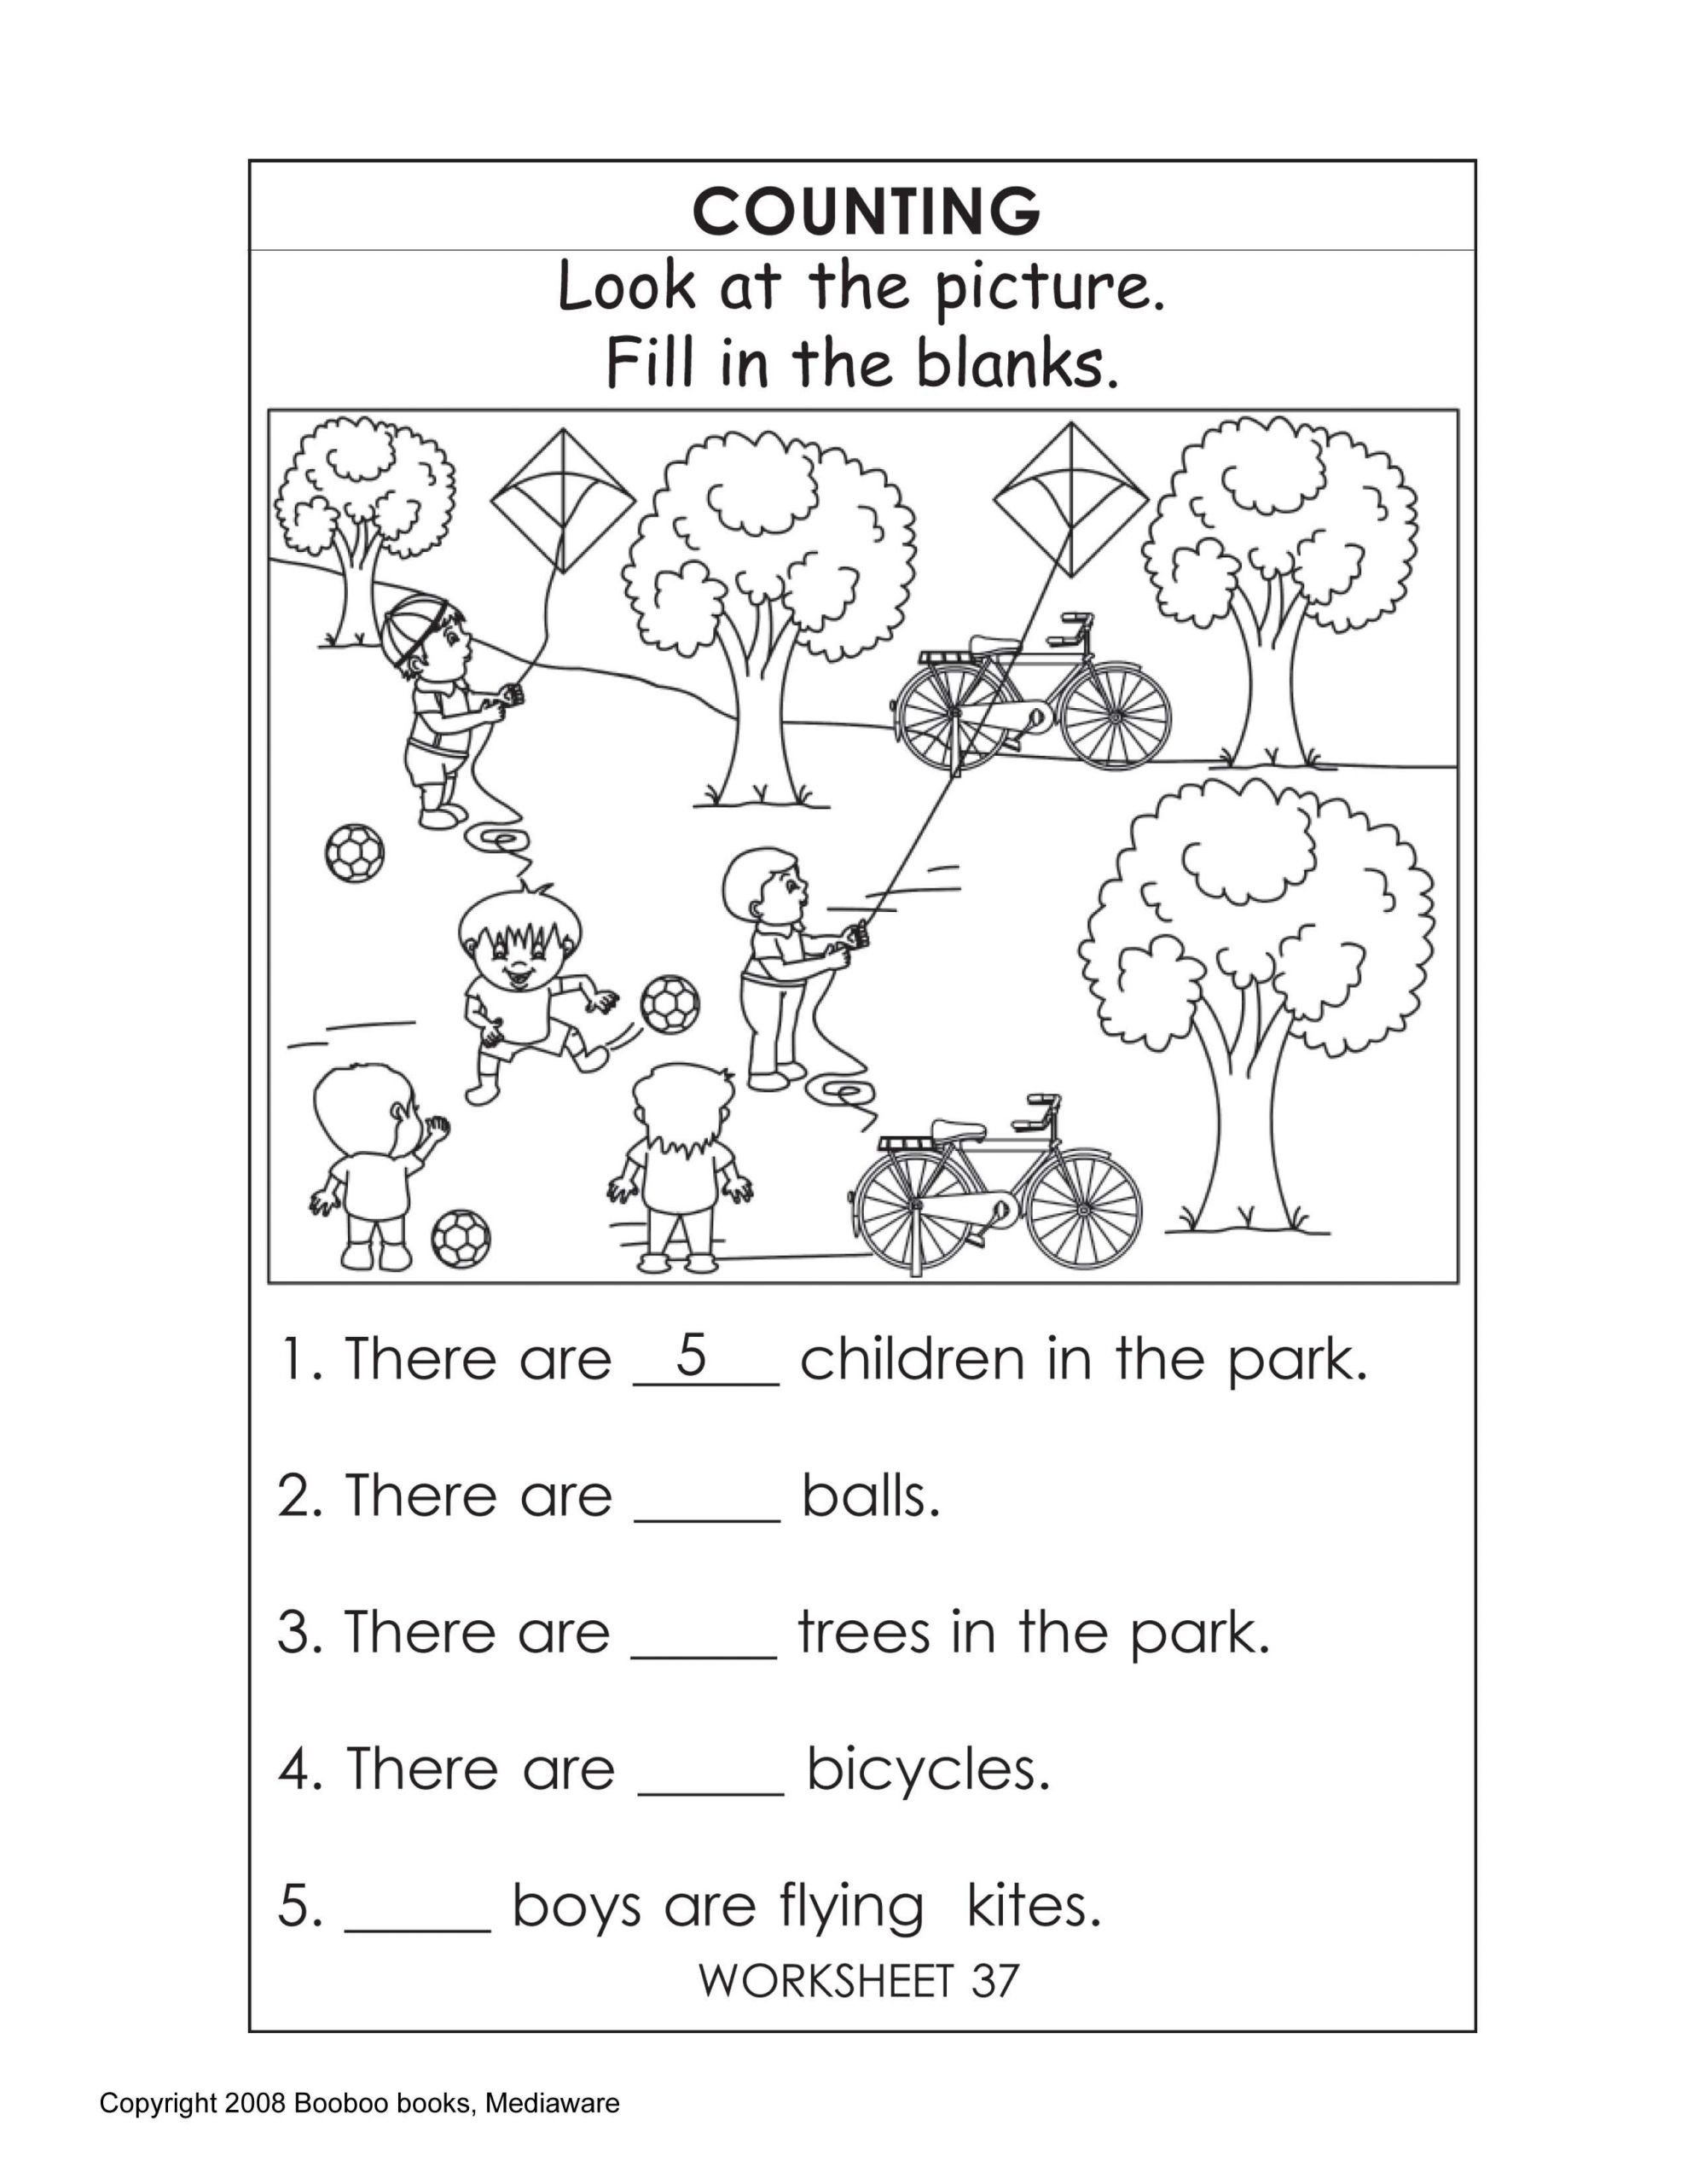 Sequence Worksheets 5th Grade Kids Learning Games Page 2 Free 4th Grade Coloring Pages